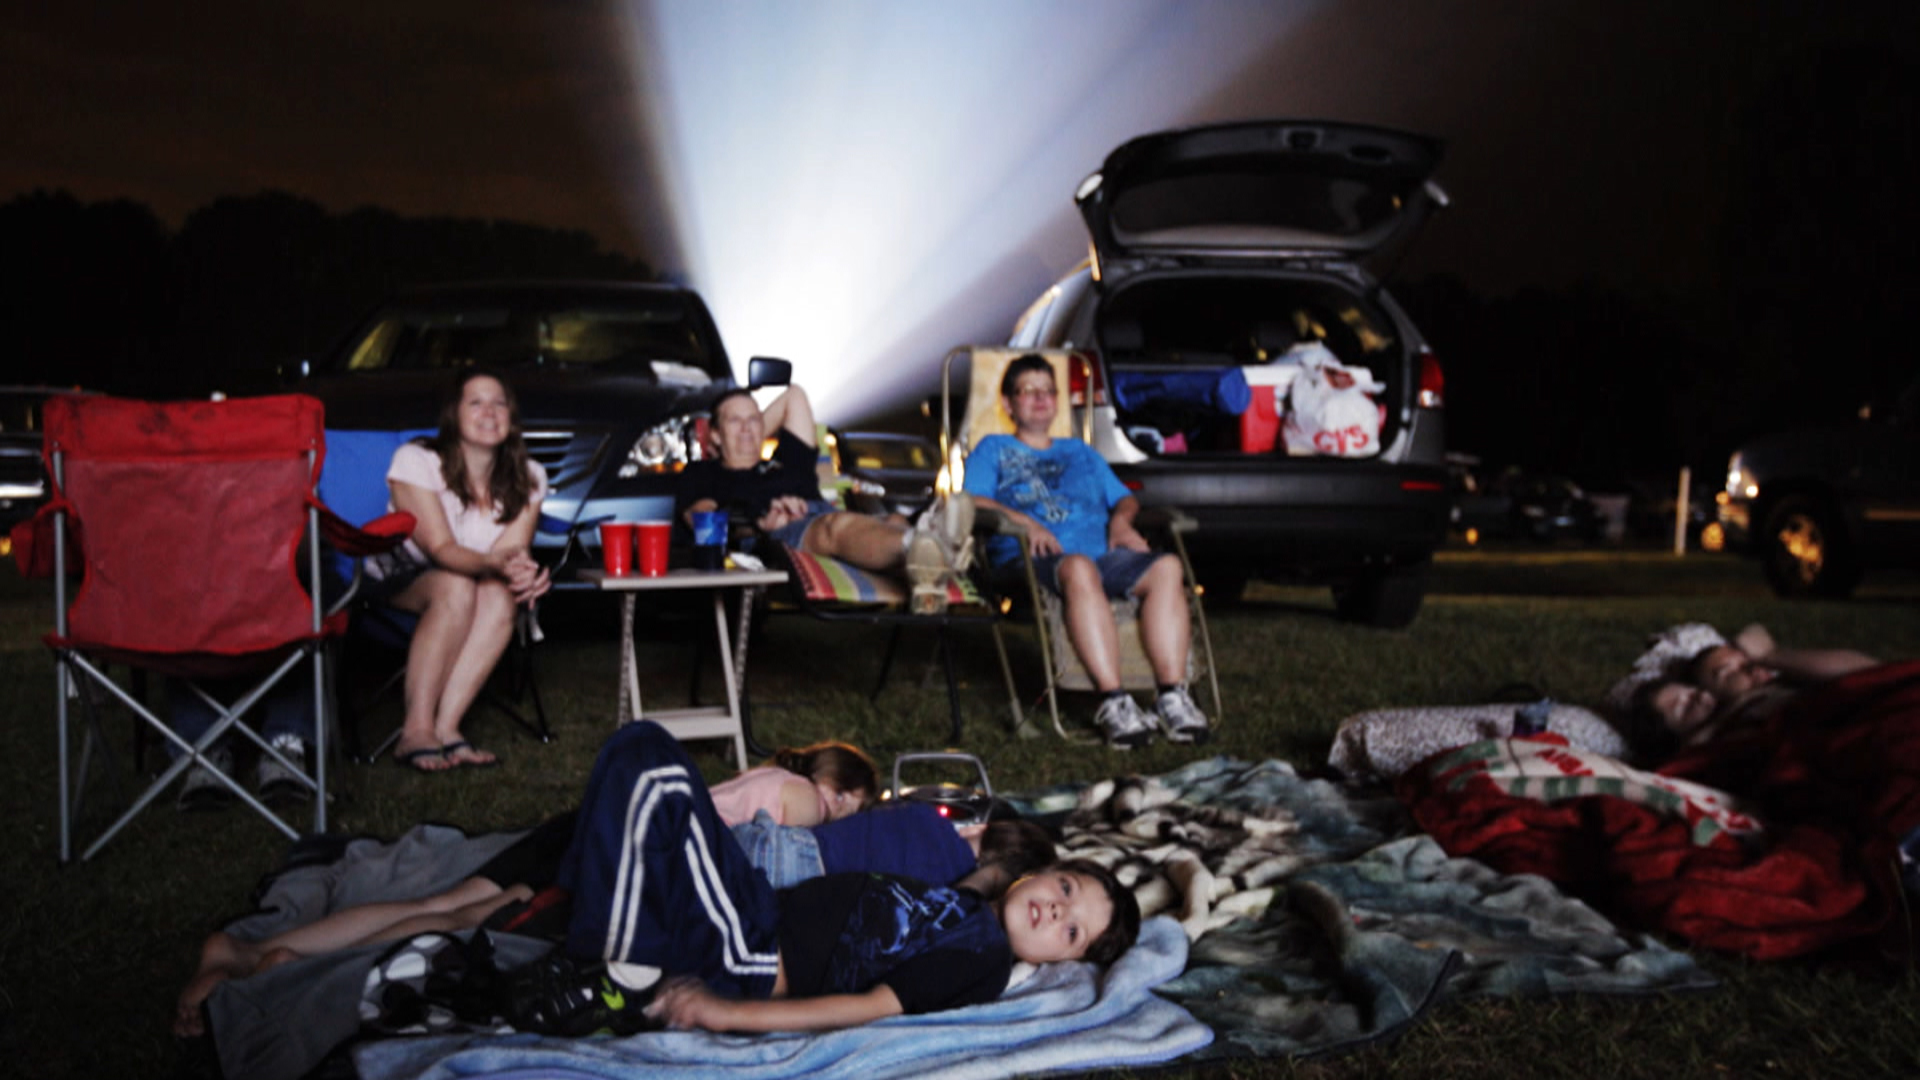 The American drive-in fights for survival